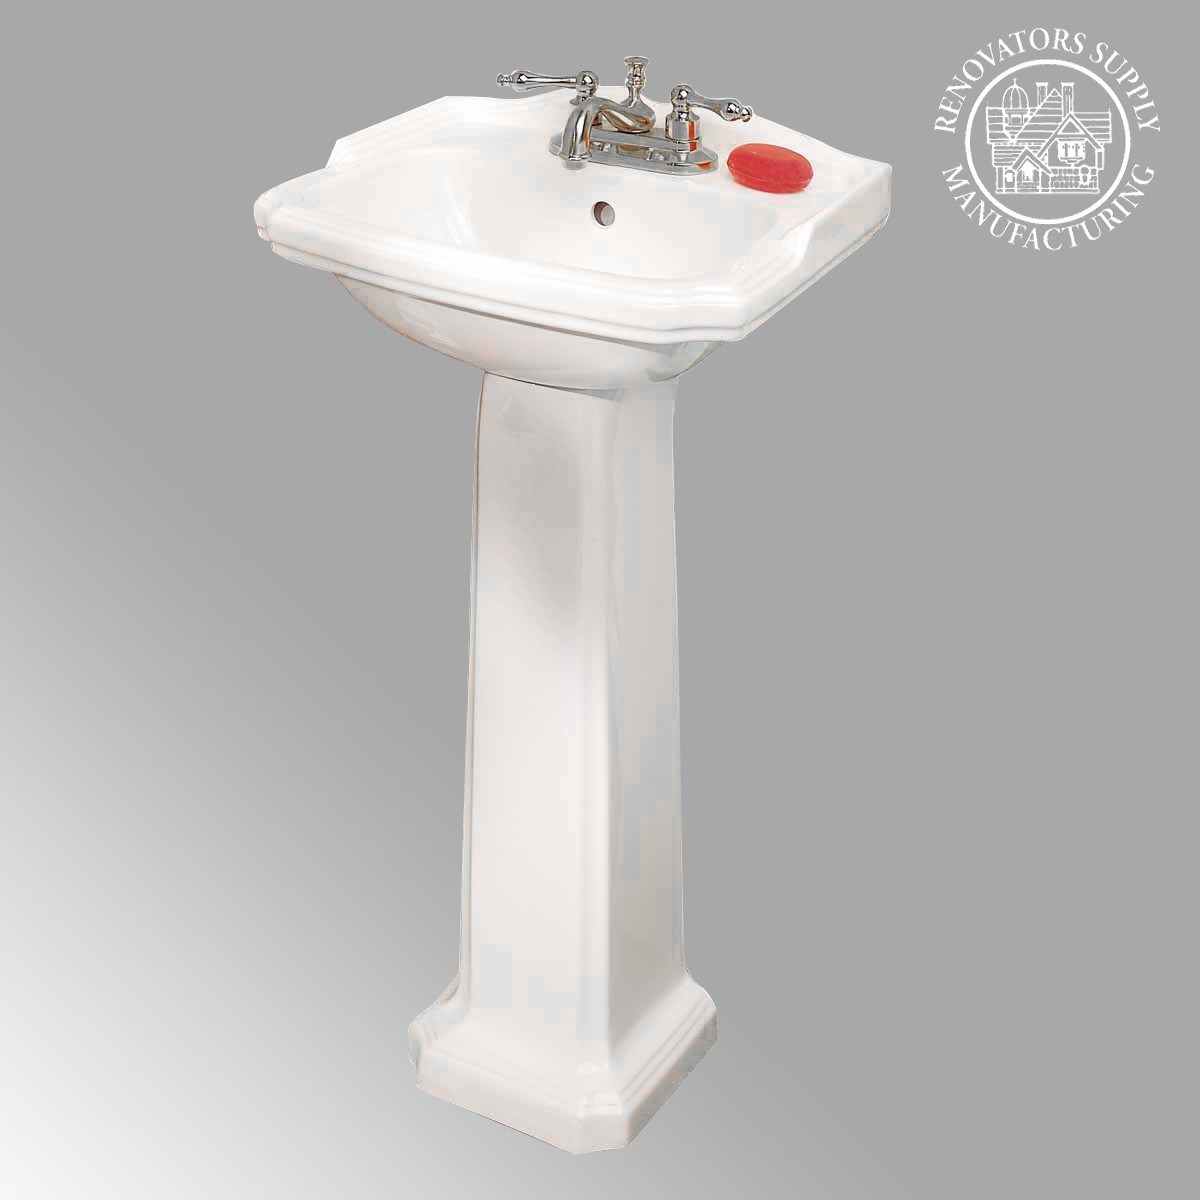 Pedestal Sink White Bathroom China Cloakroom Space-saver